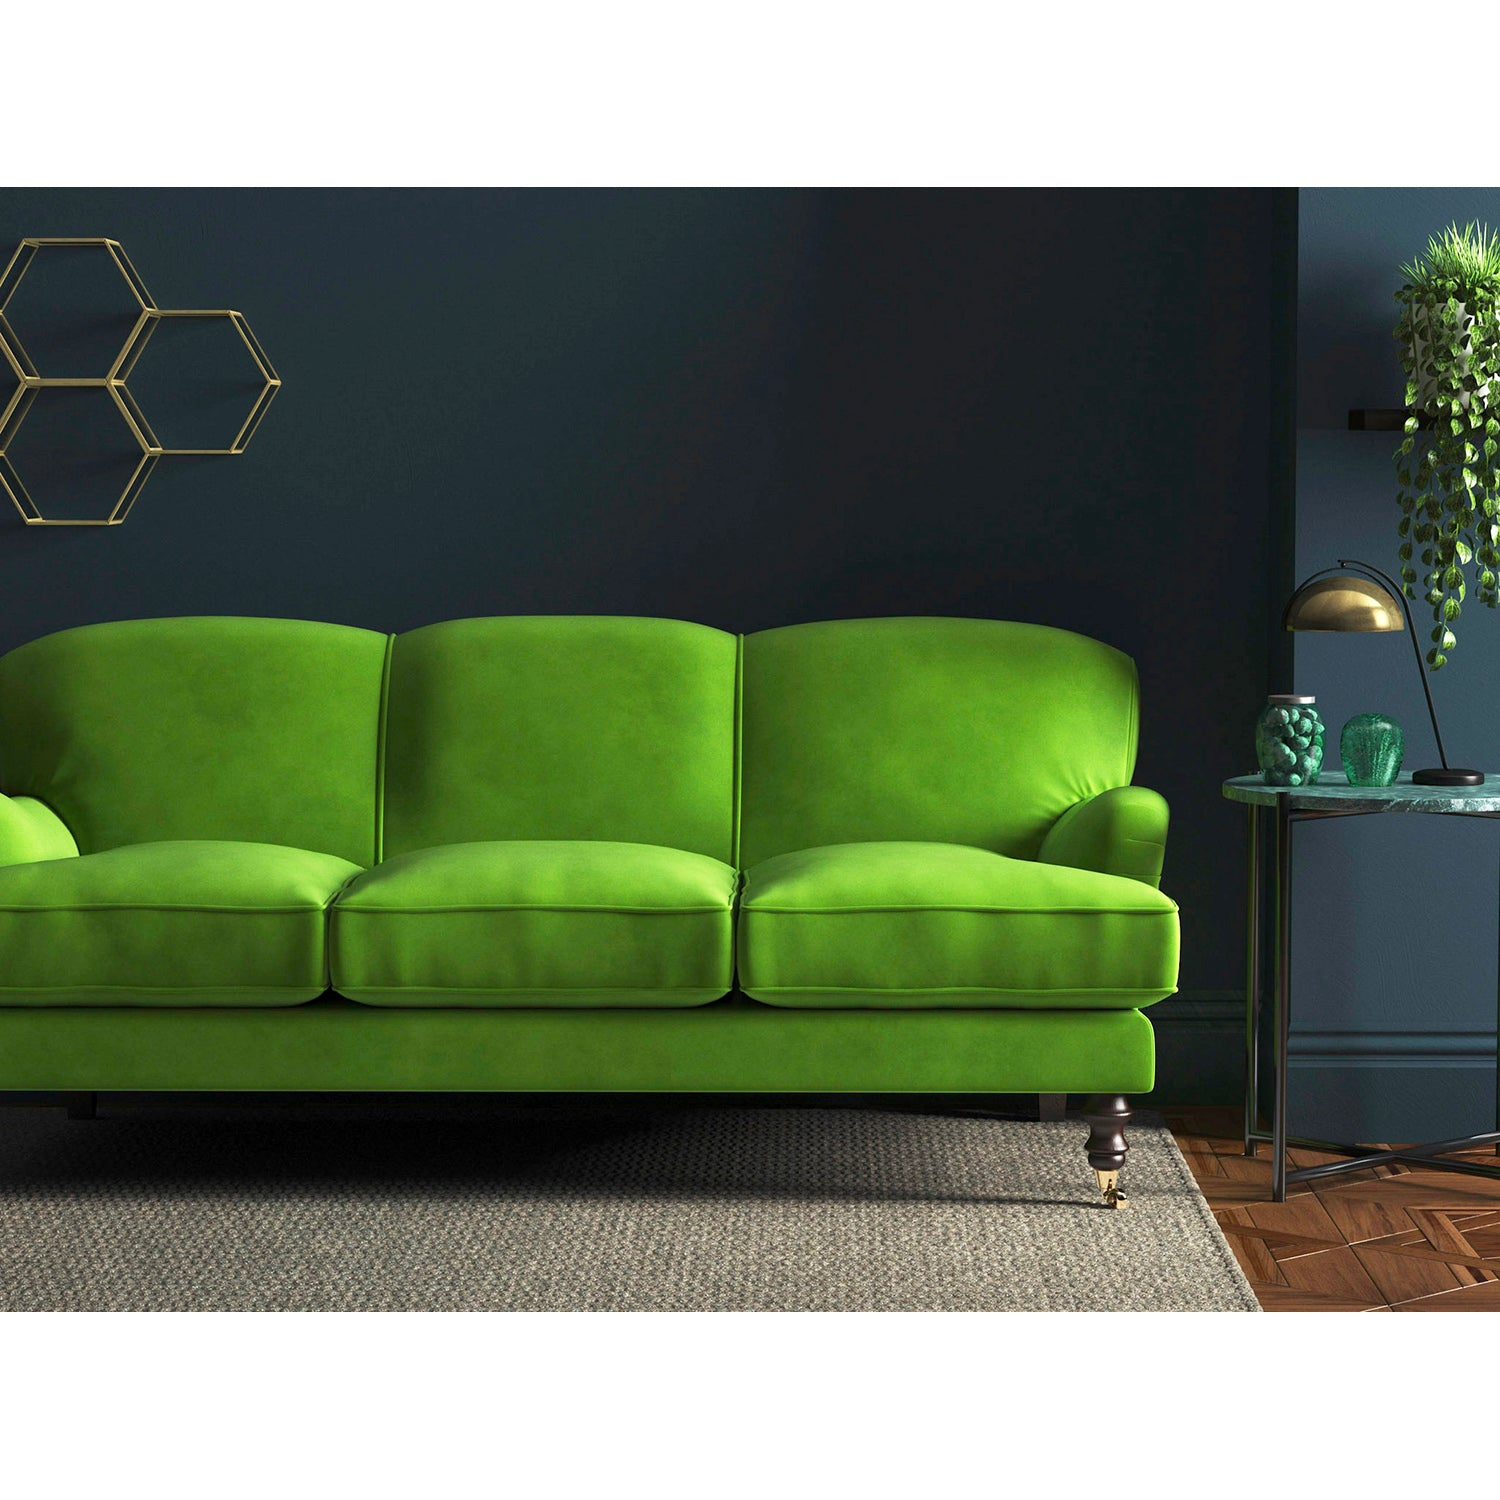 Bright green velvet sofa with a stain resistant finish